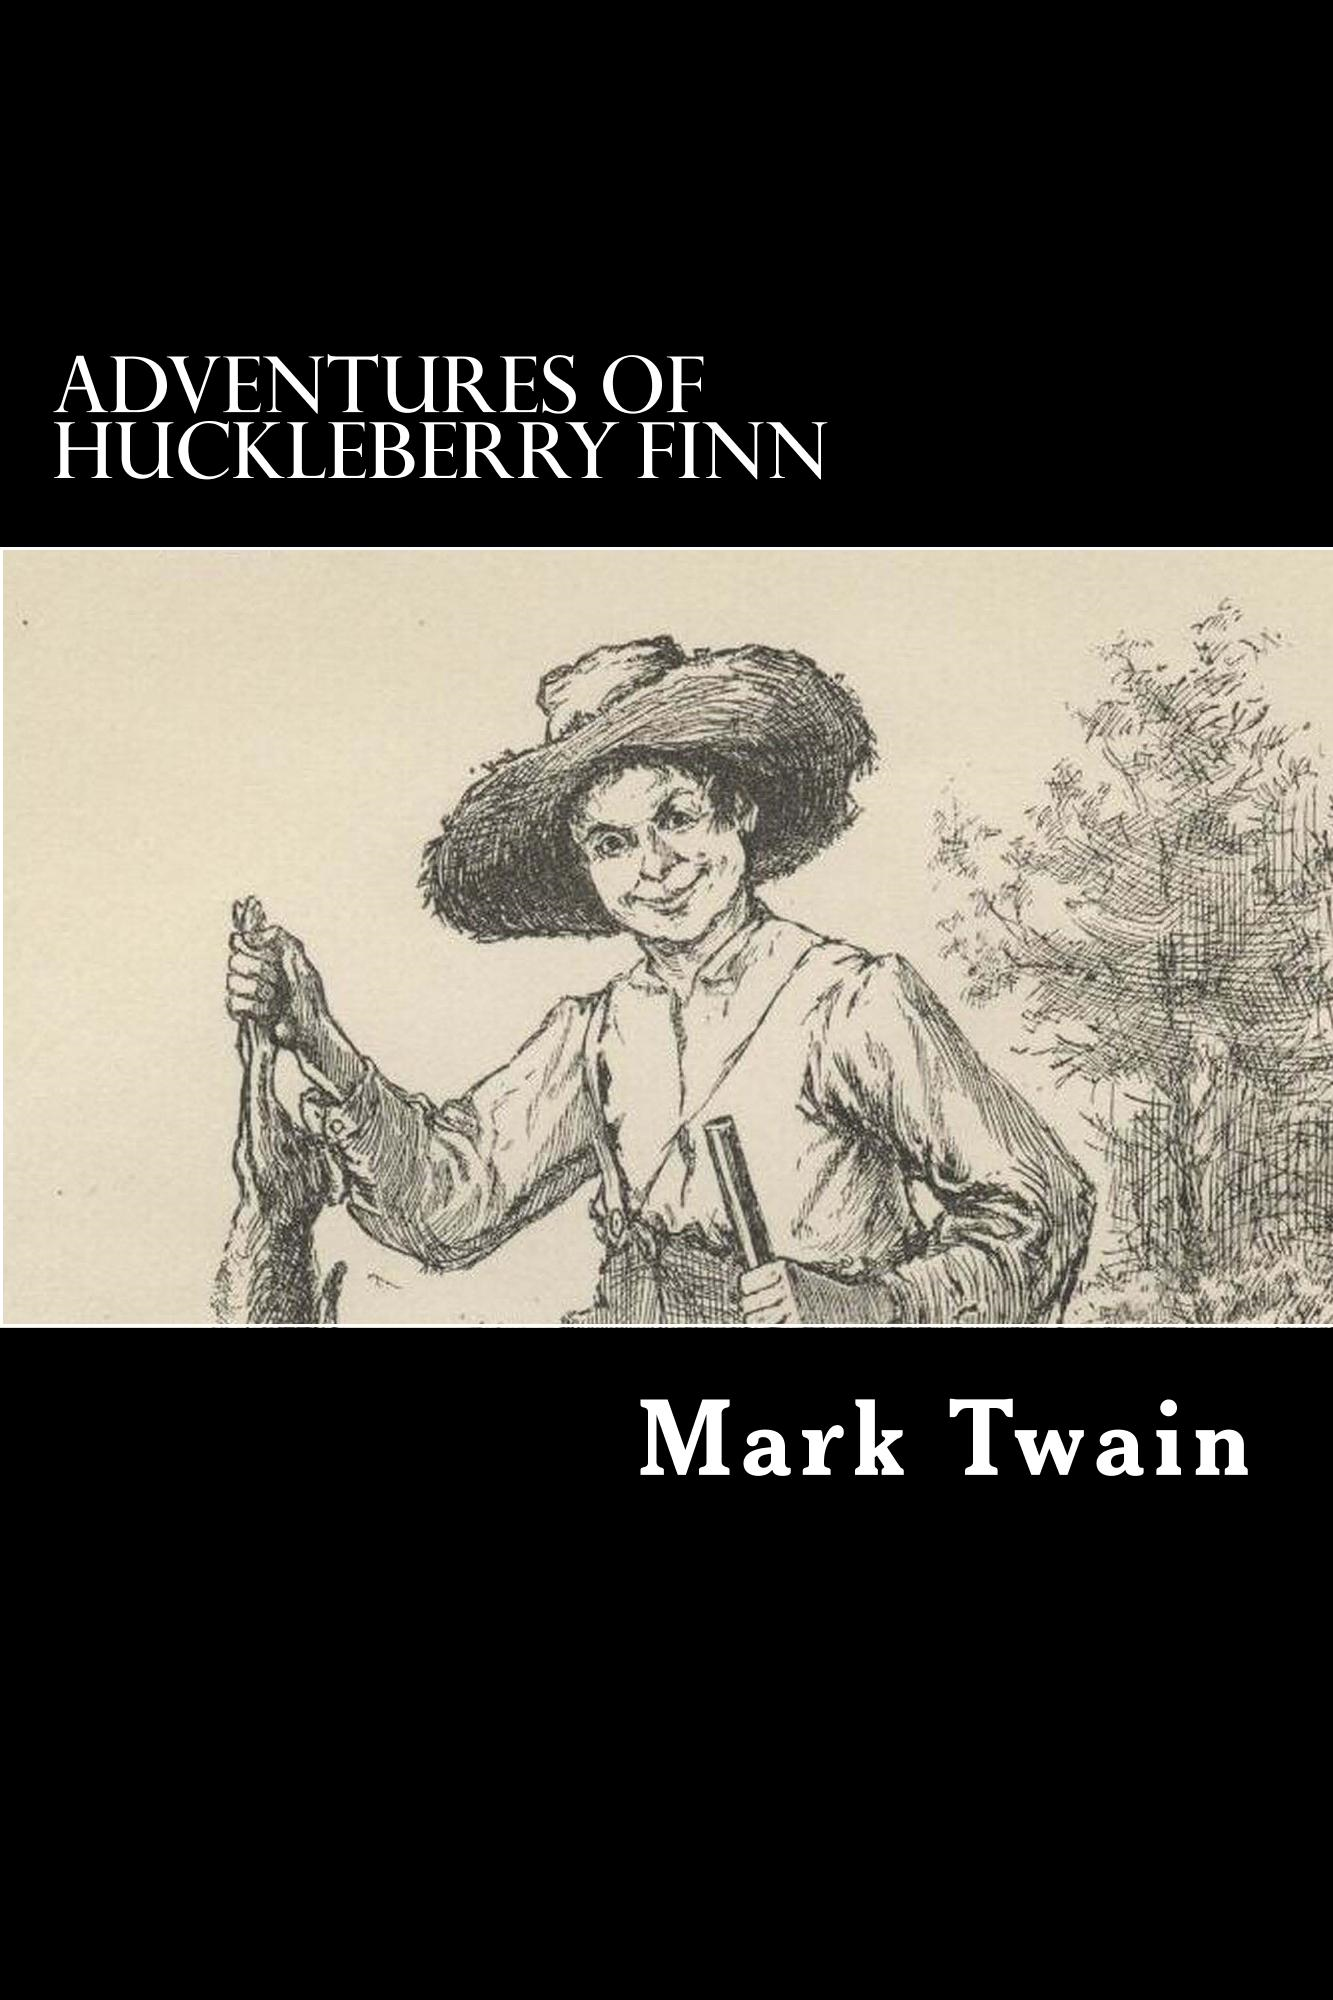 Mark Twain - Adventures of  Huckleberry Finn